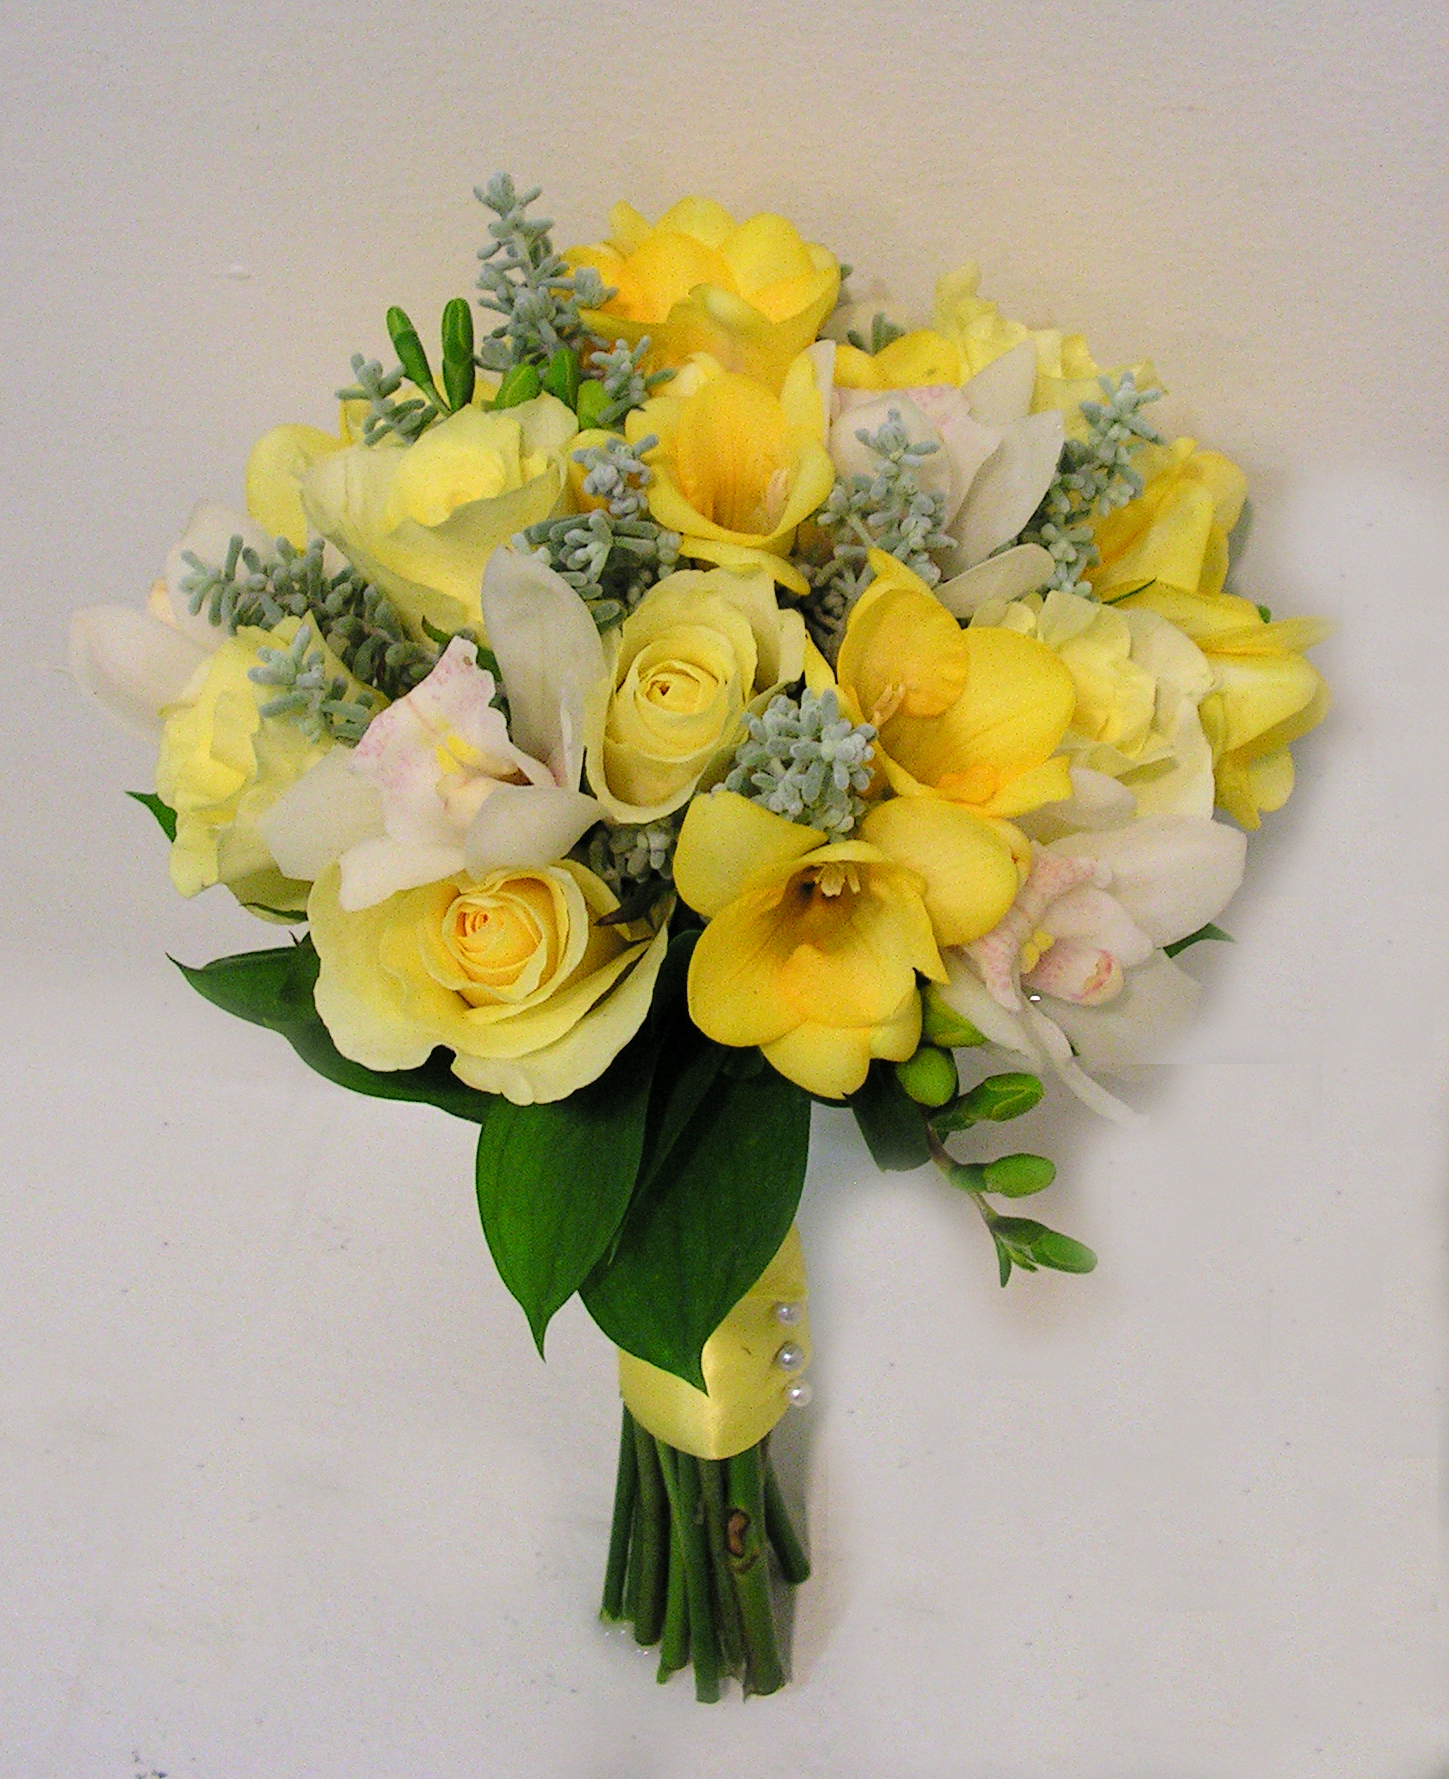 yellow freesia with roses and silver foliage bouquet